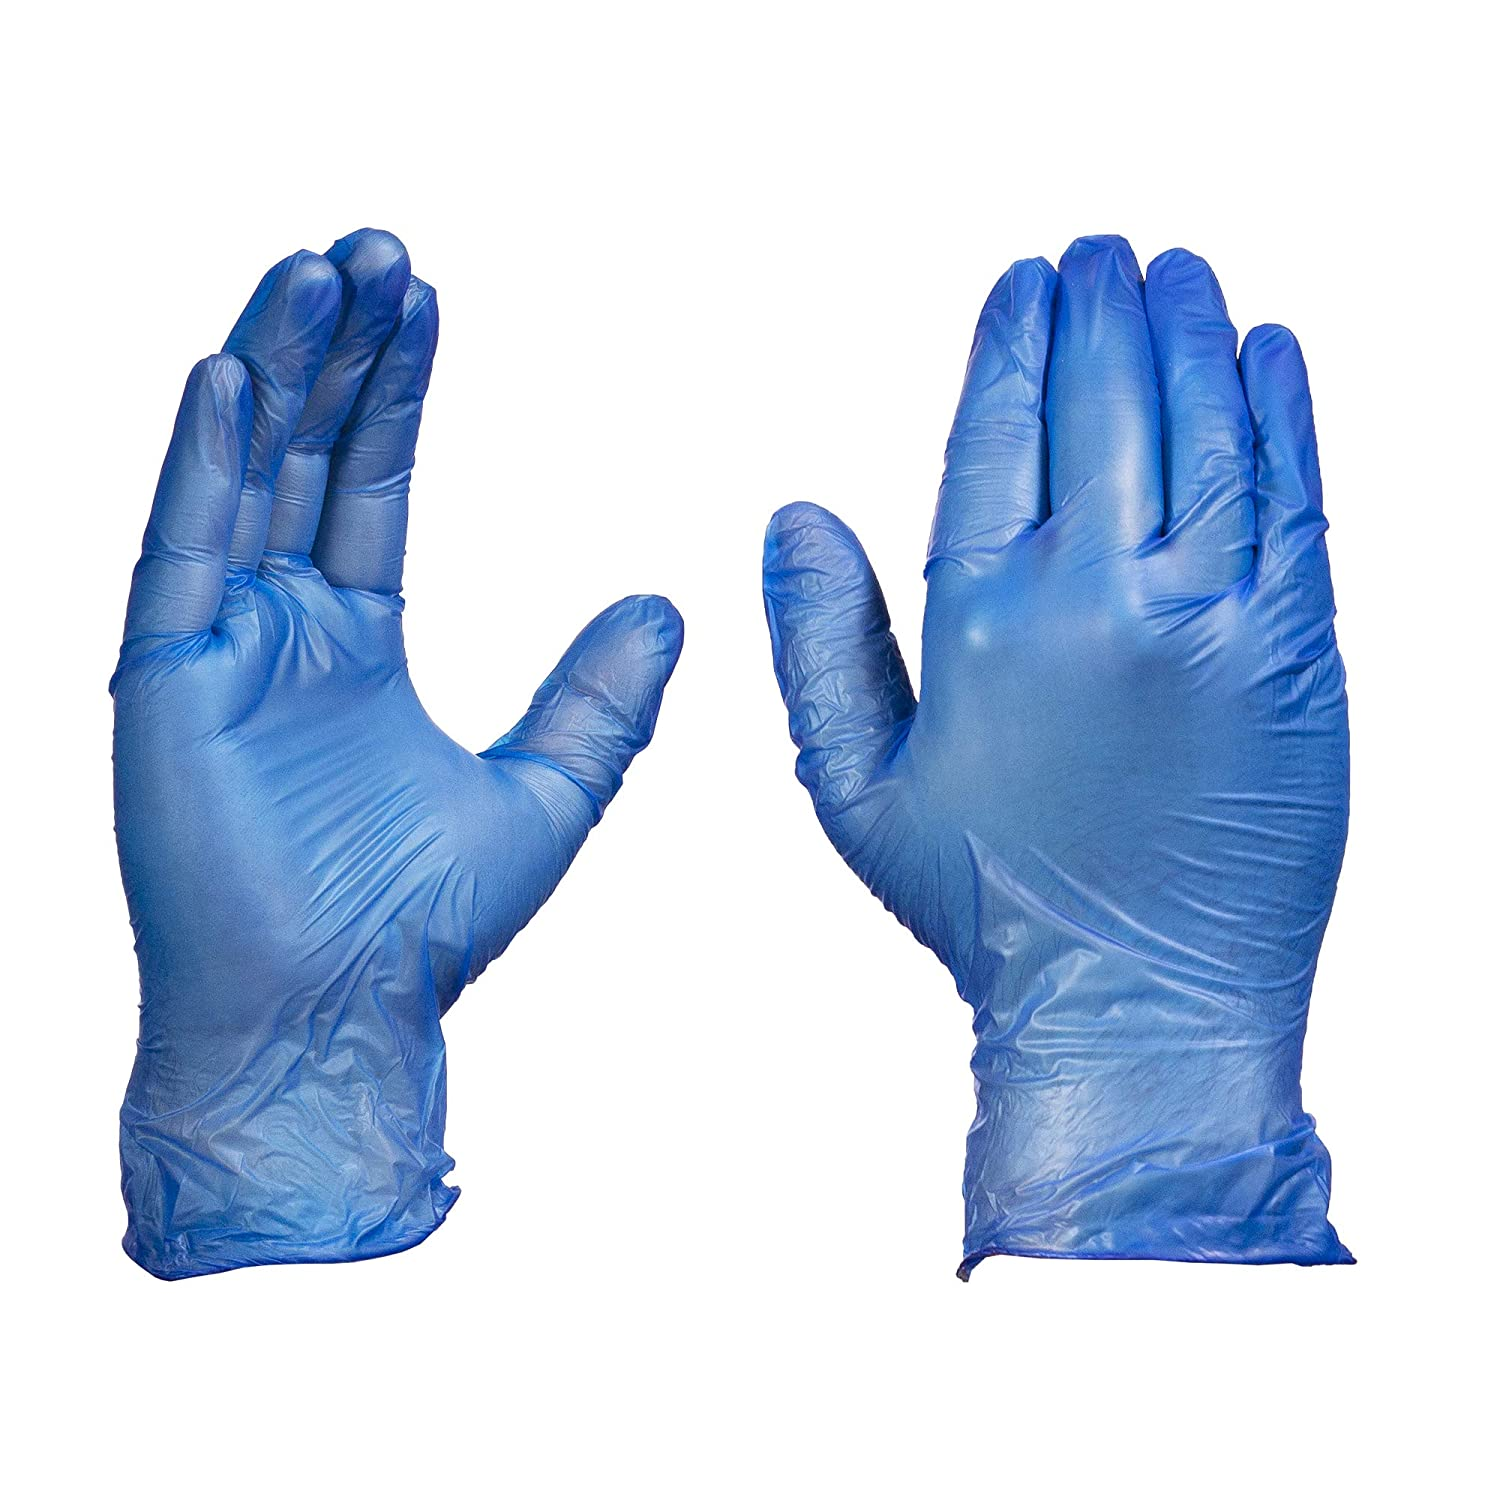 AMMEX - IVBPF46100-BX - Vinyl Gloves - GlovePlus - Disposable, Powder Free, Non-Sterile, 4 mil, Large, Blue (Box of 100)